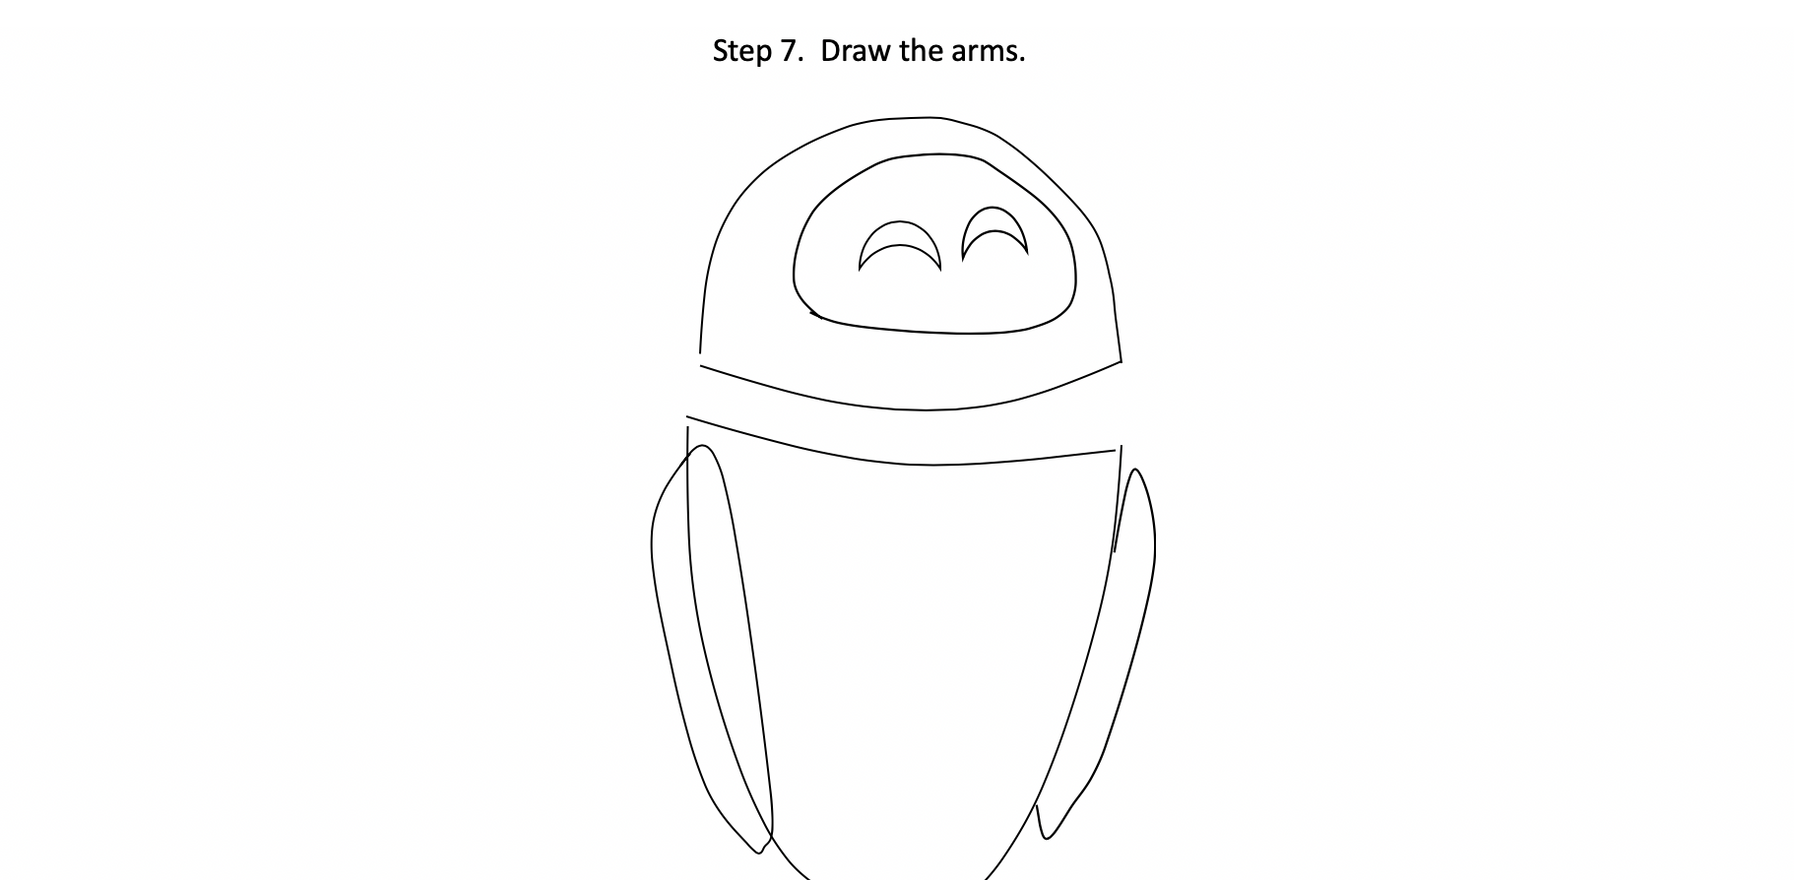 STEP 7 - Draw the arms